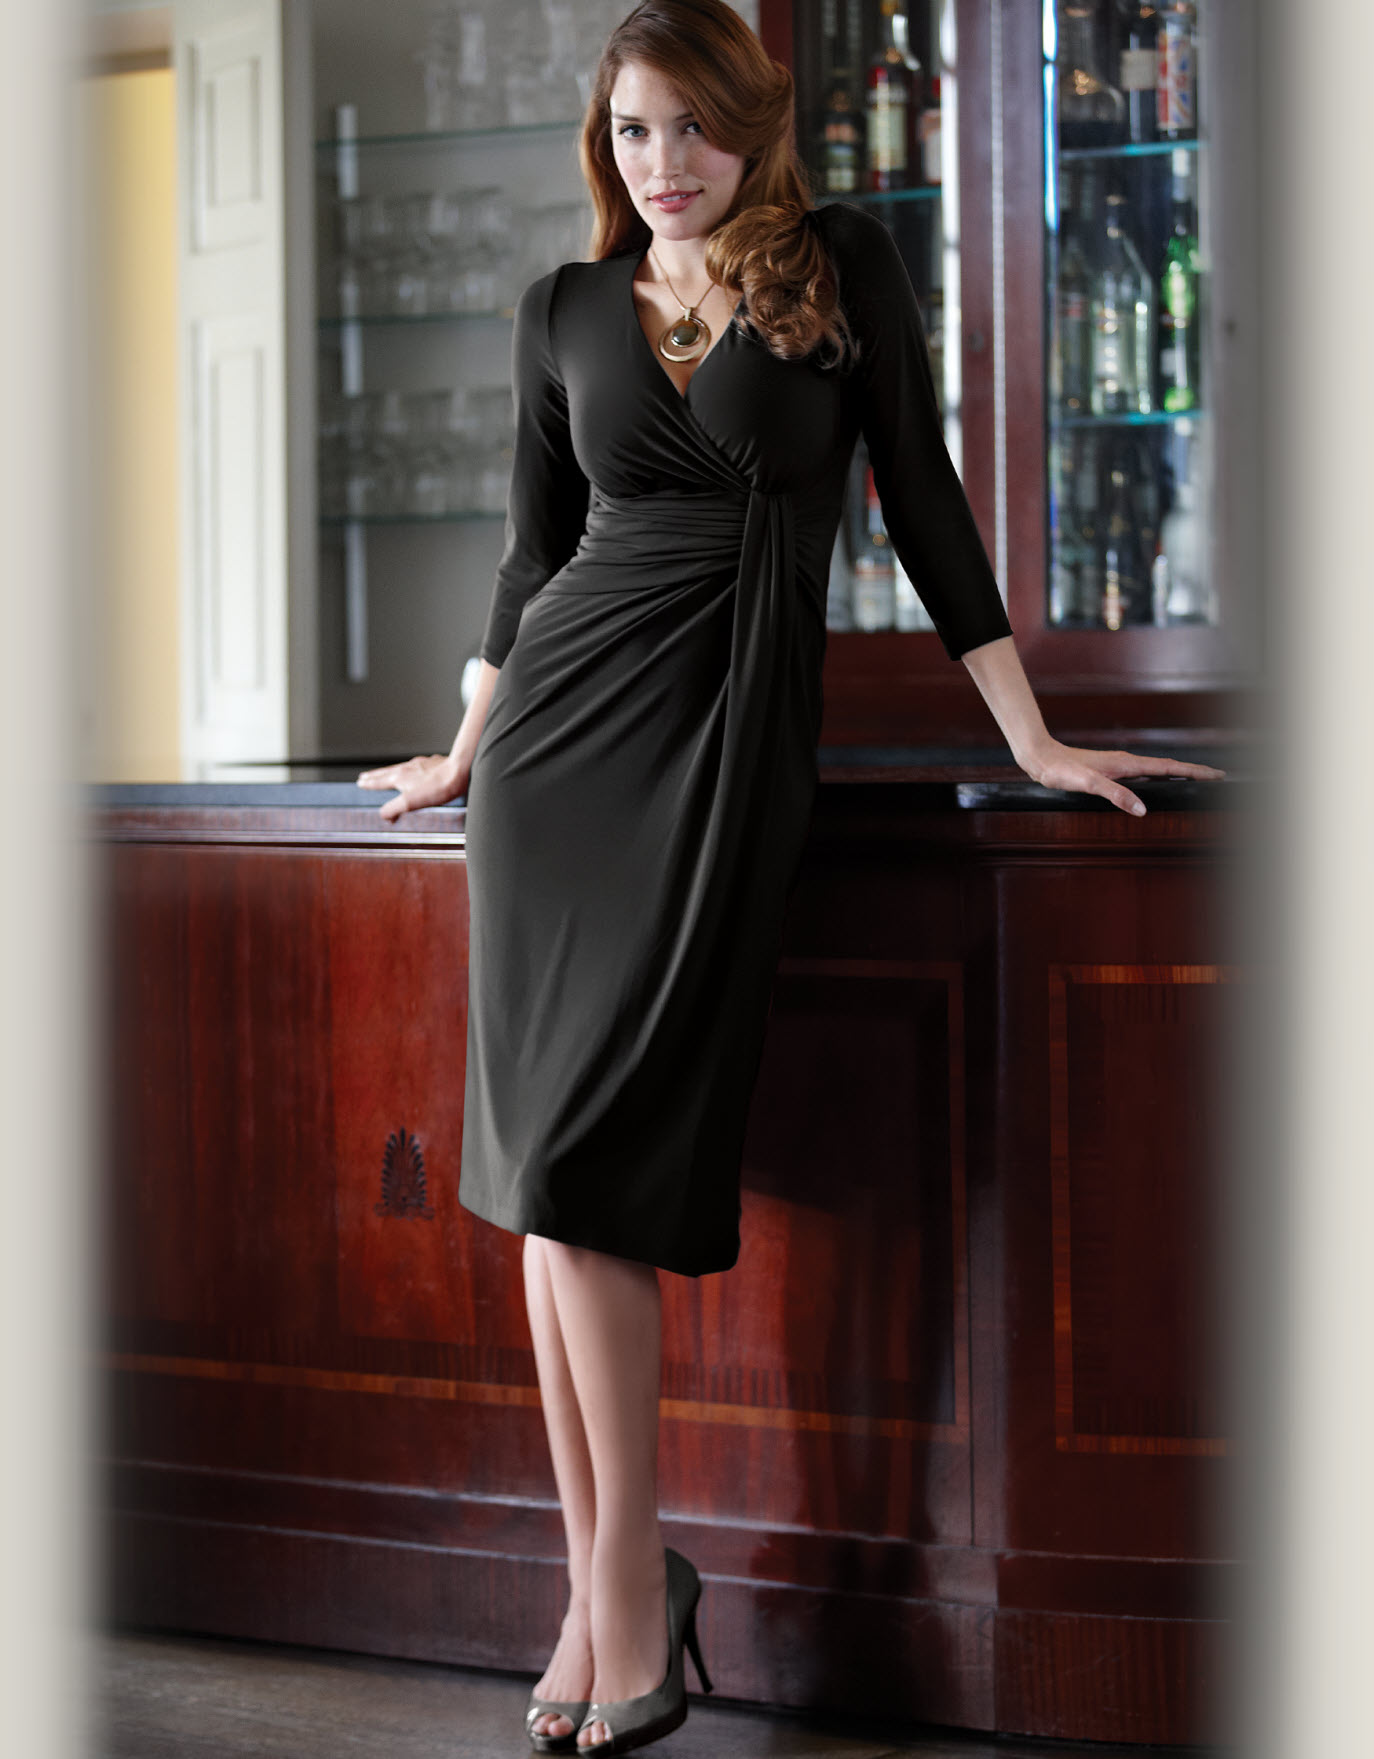 Drape Jersey Dress.  Available in sizes 08-18 (UK) Curvy/Really Curvy and Really Curvy/Super Curvy (some sizes sold out).  £55.00 (about $88.09 USD)